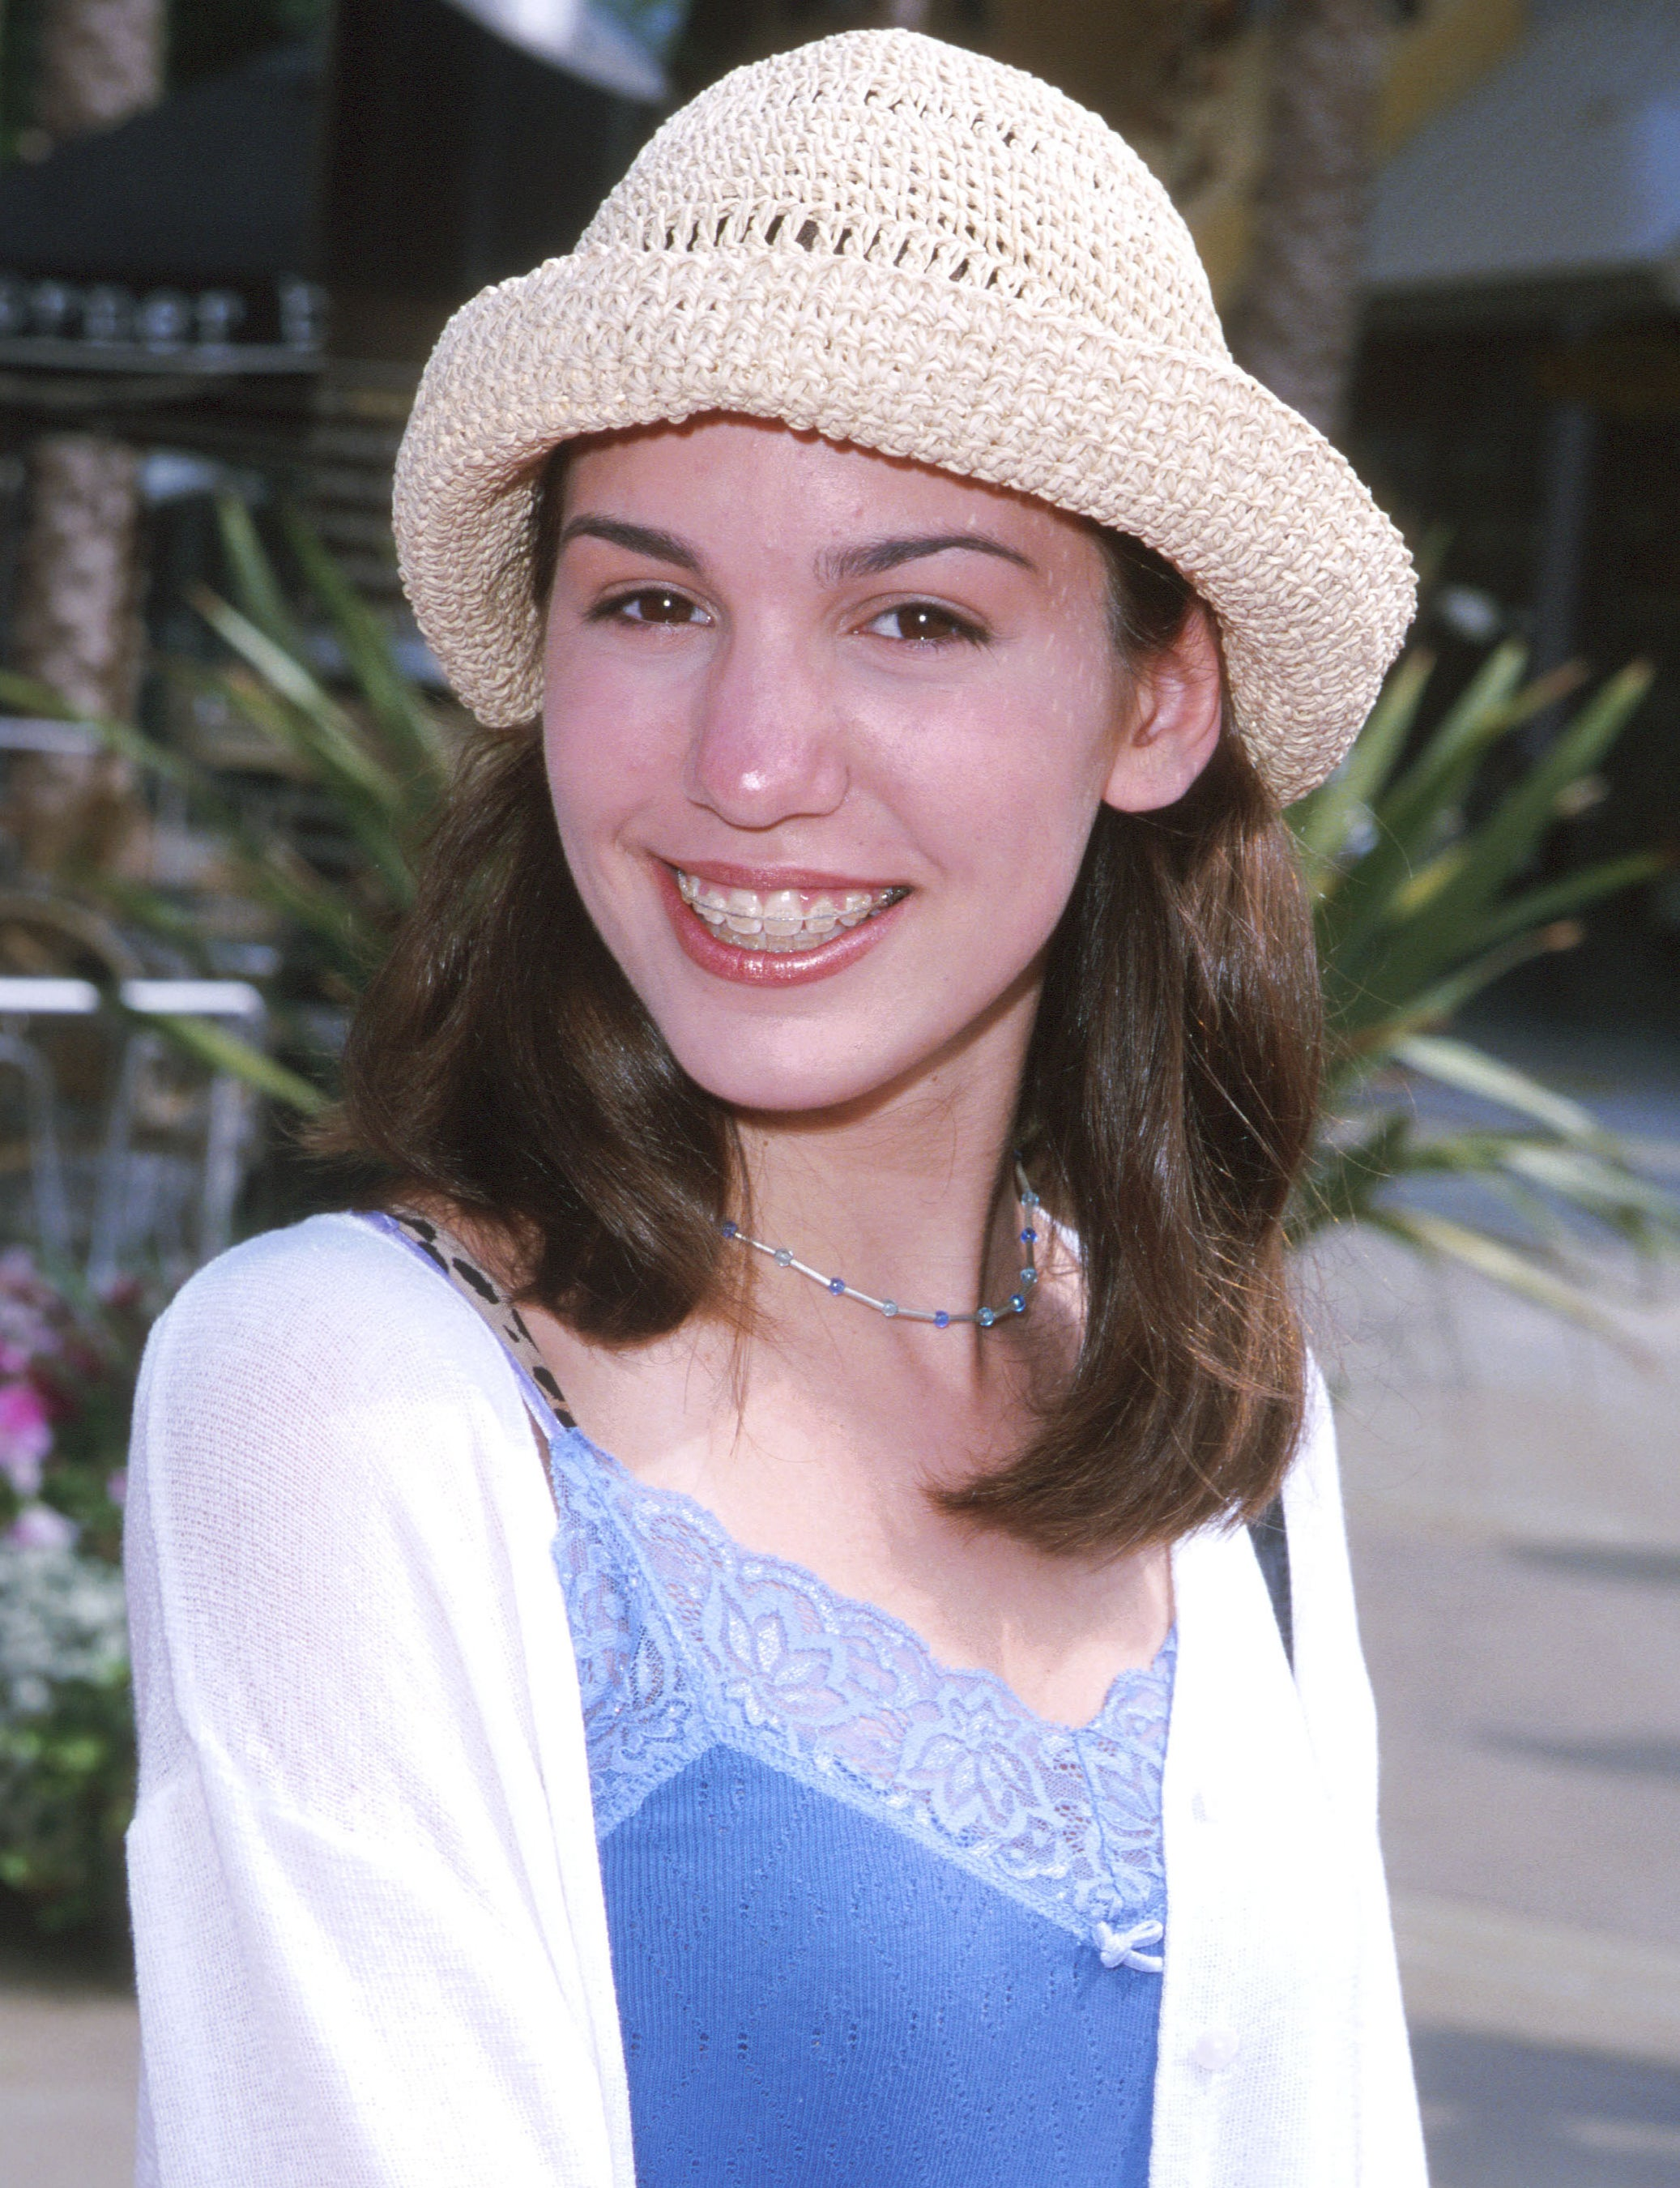 A youngChristy has braces and wears a straw hat